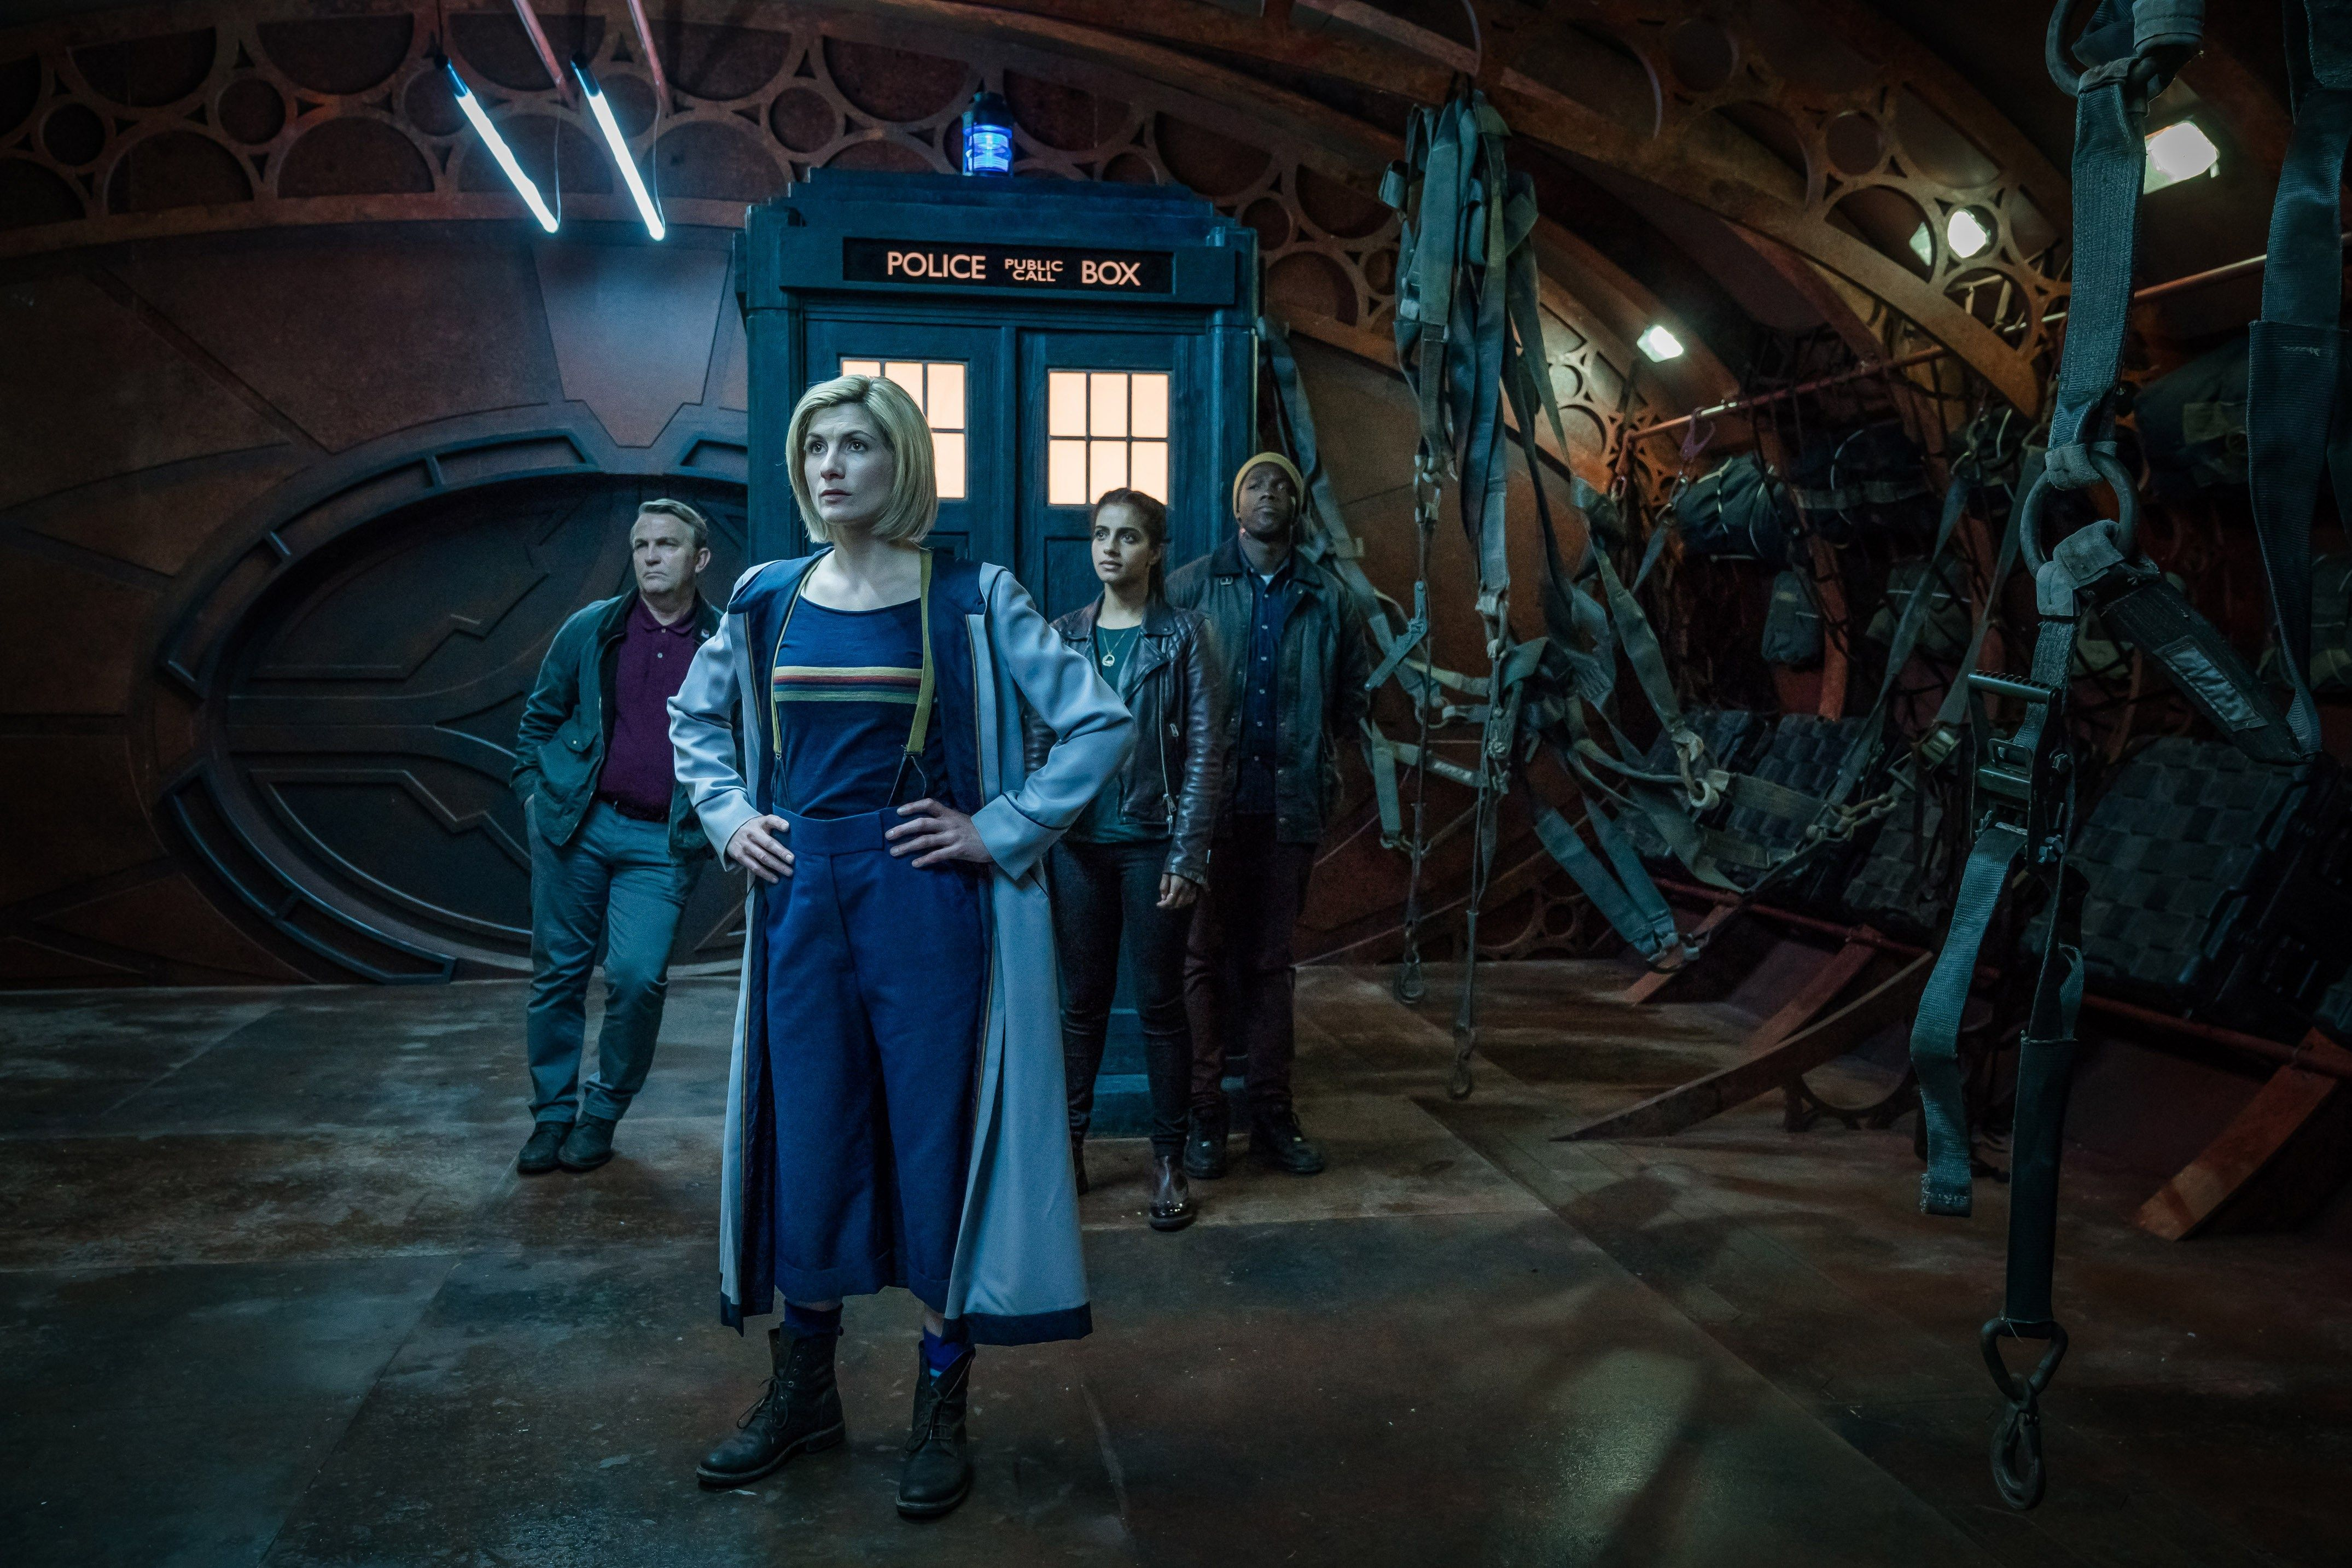 Christmas In The Air 2019 Cast Doctor Who season 12 premiere, cast, air date, trailer and